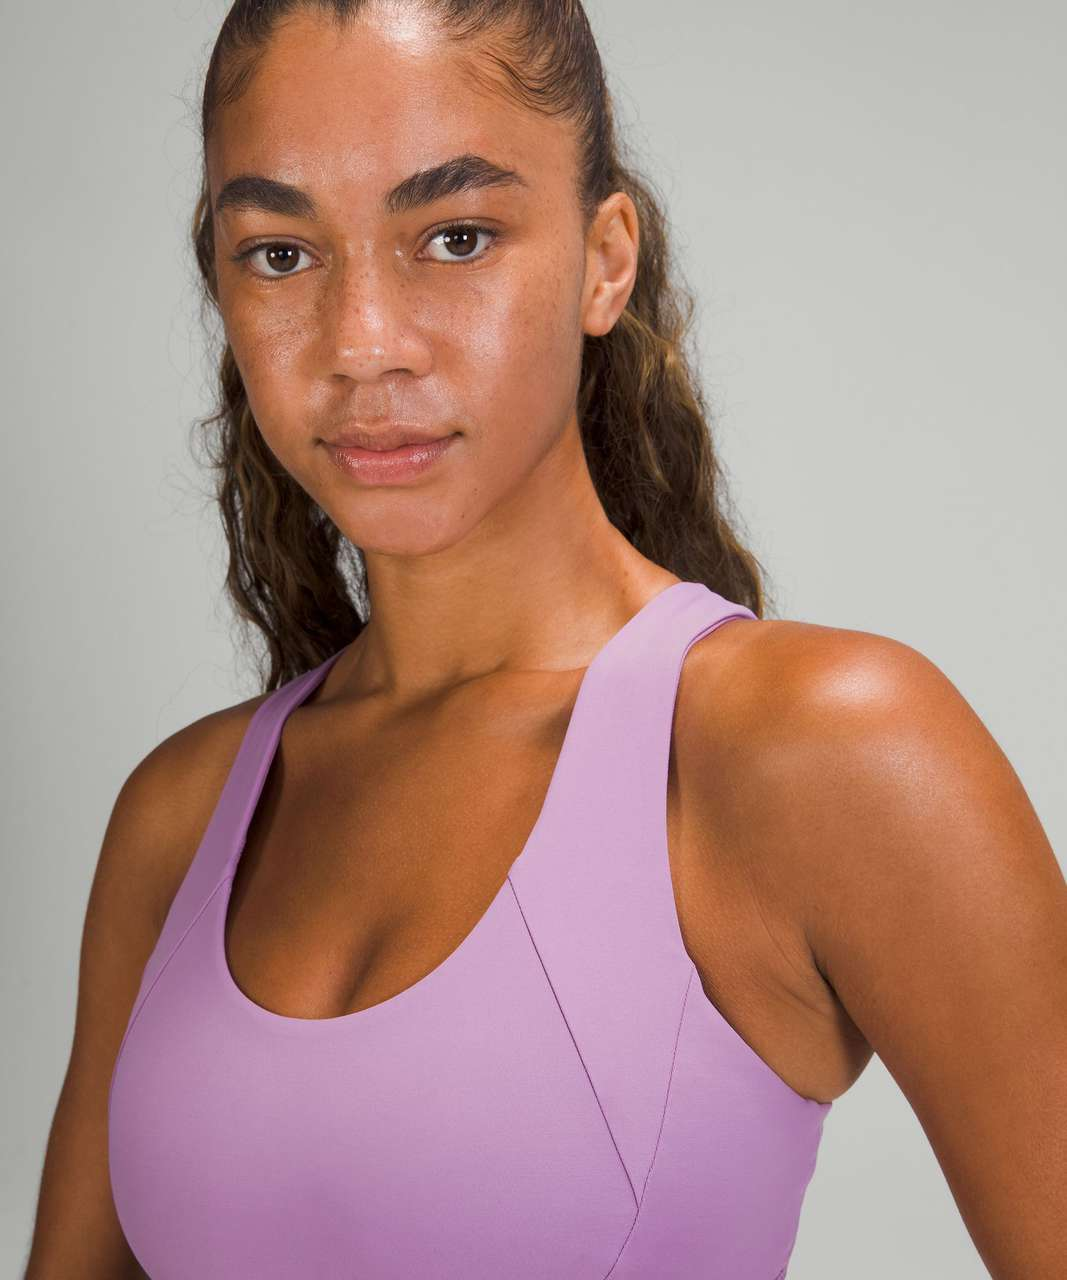 Lululemon Free To Be Elevated Bra *Light Support, DD/E Cup - Wisteria Purple